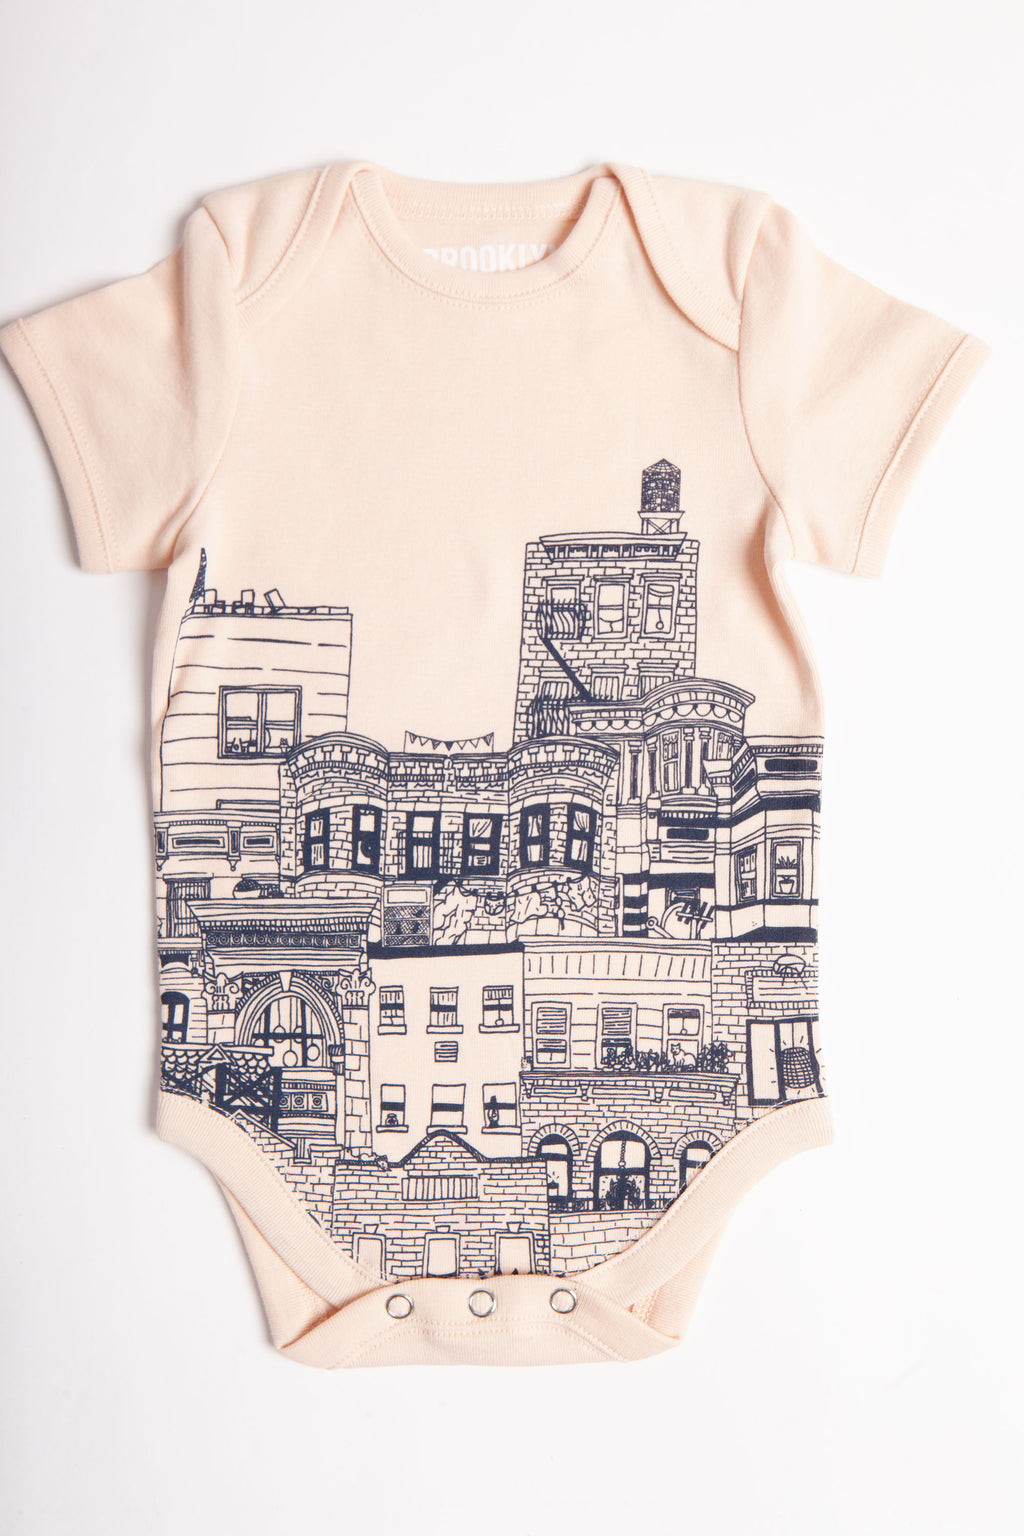 Linen colored infant onesie with hand-drawn buildings showing windows, rooftops and a watertower.